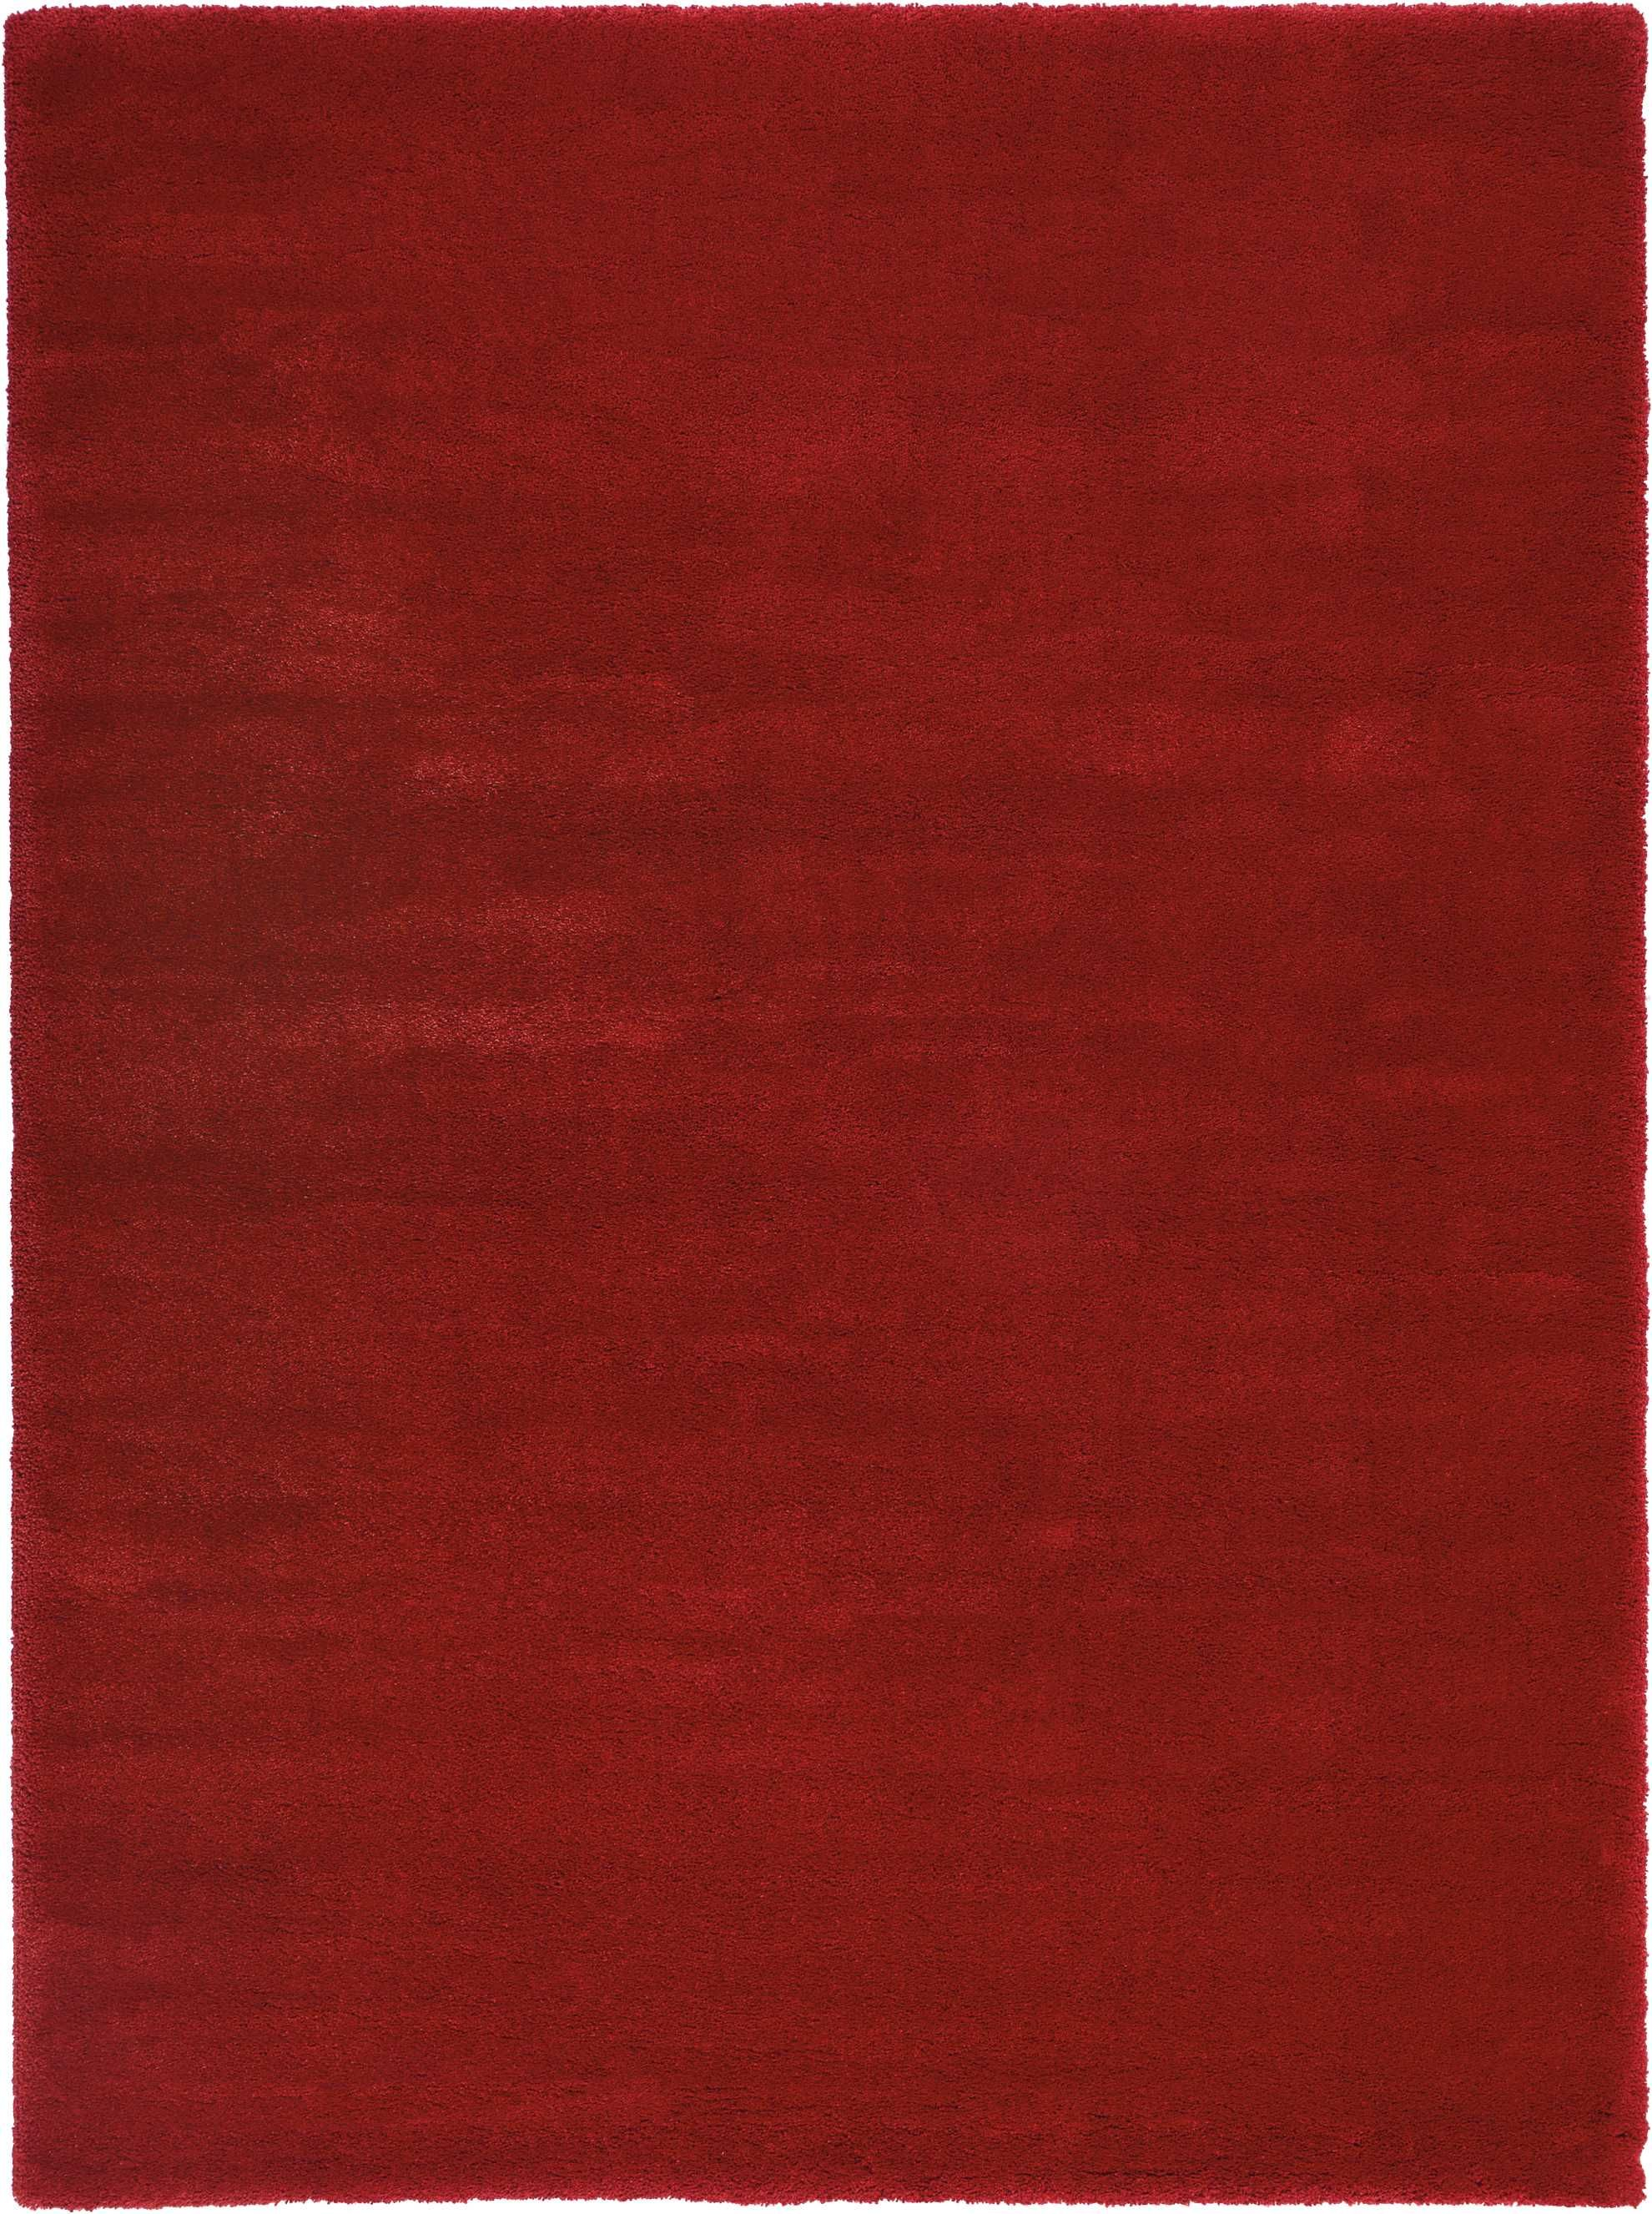 CK700 Burgundy This Greenpoint area rug by Calvin Klein